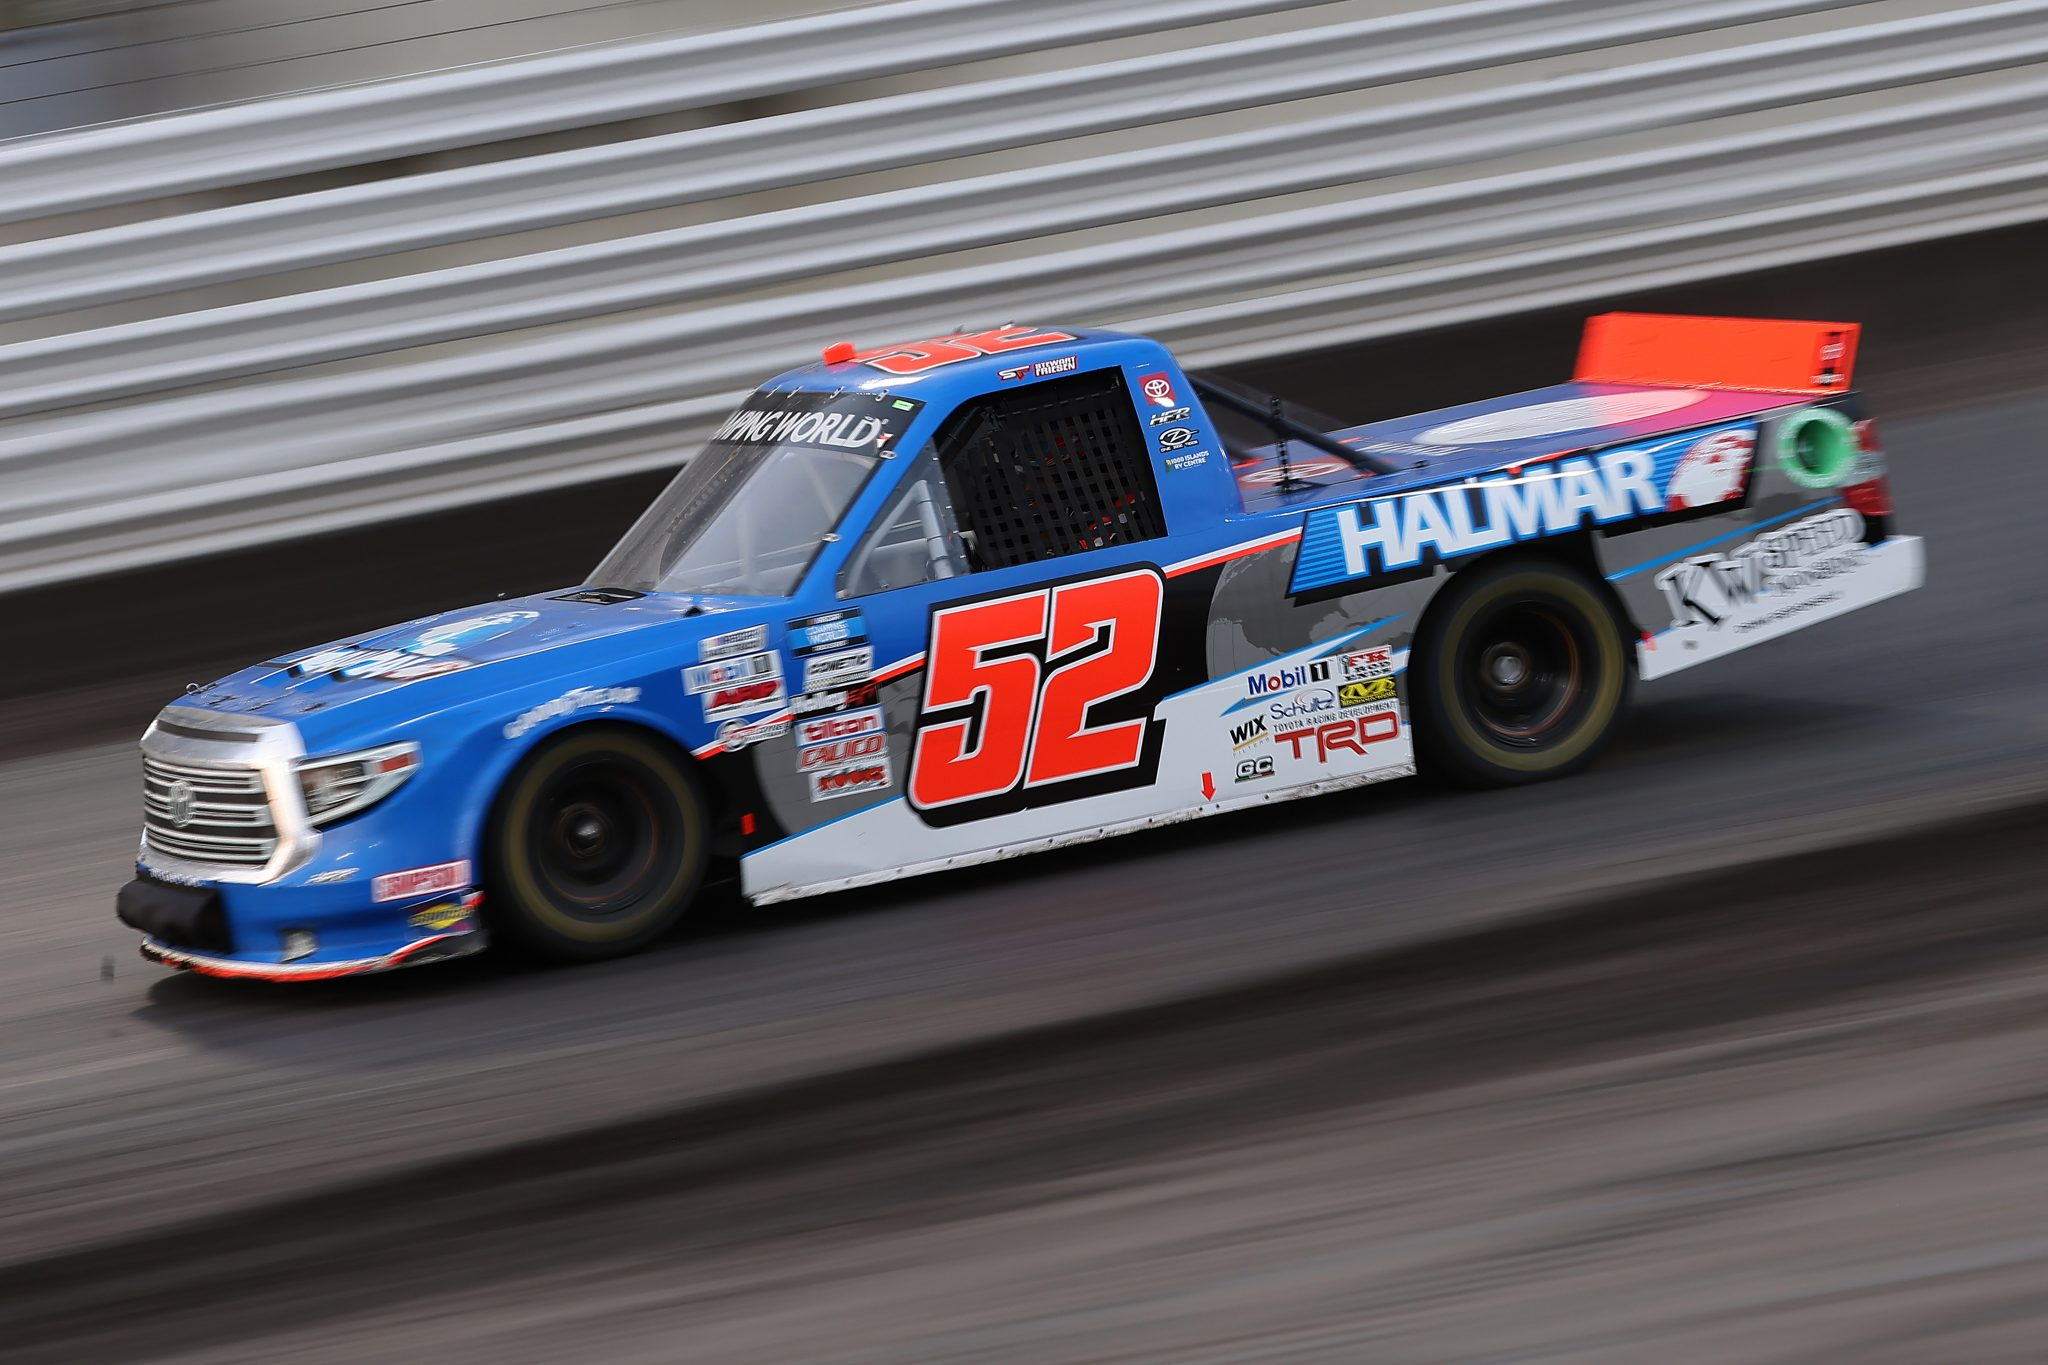 KNOXVILLE, IOWA - JULY 09: Stewart Friesen, driver of the #52 Halmar International Toyota, drives during the NASCAR Camping World Truck Series Corn Belt 150 presented by Premier Chevy Dealers at Knoxville Raceway on July 09, 2021 in Knoxville, Iowa. (Photo by James Gilbert/Getty Images) | Getty Images